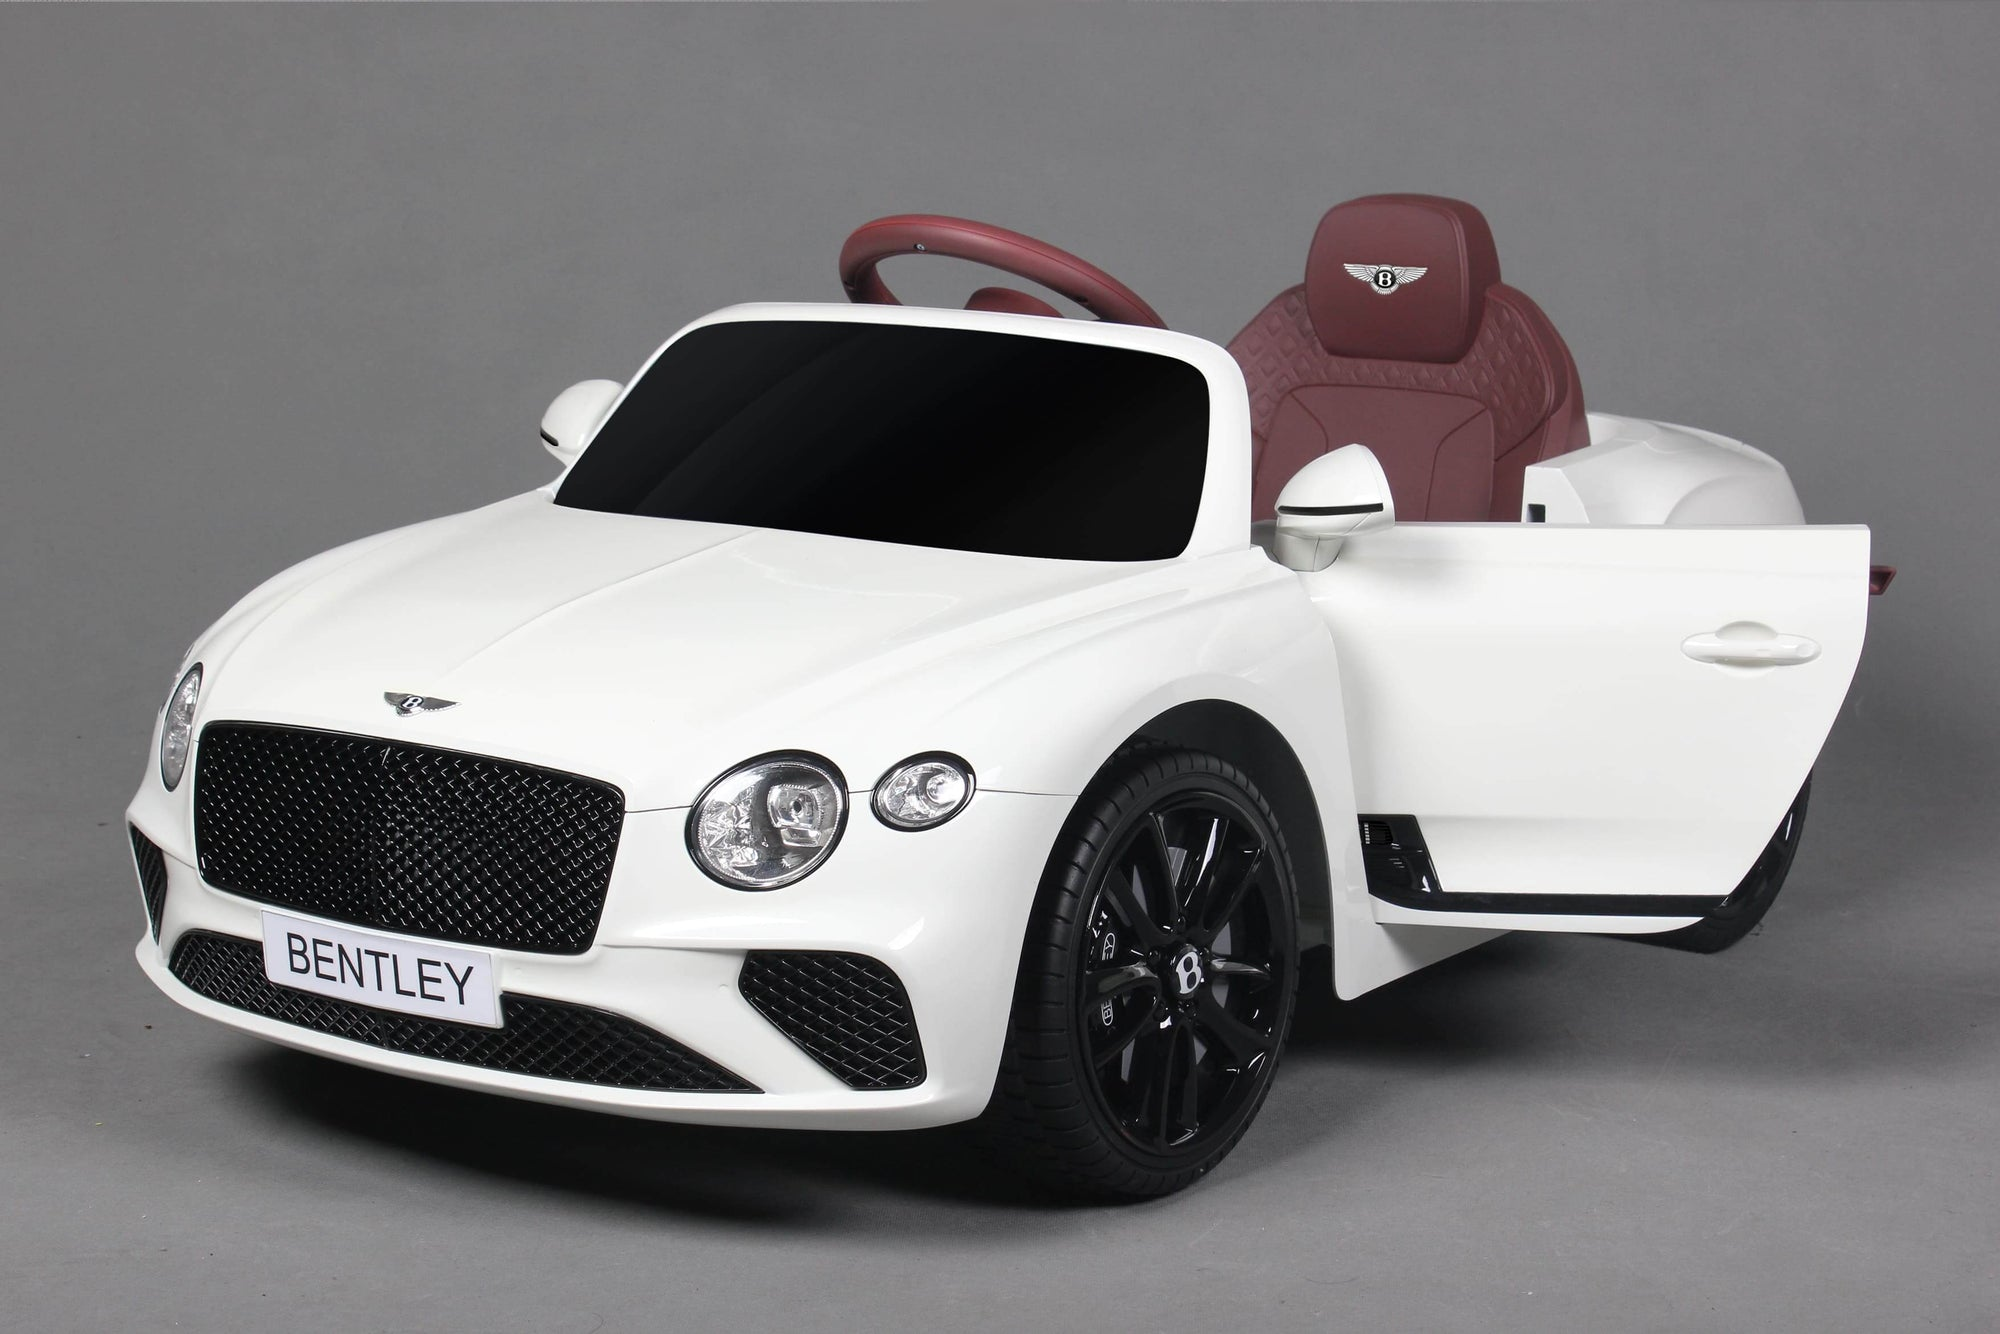 BENTLEY CONTINENTAL GT LICENSED 12V KIDS ELECTRIC RIDE-ON CAR IN WHITE - FREE SHIPPING